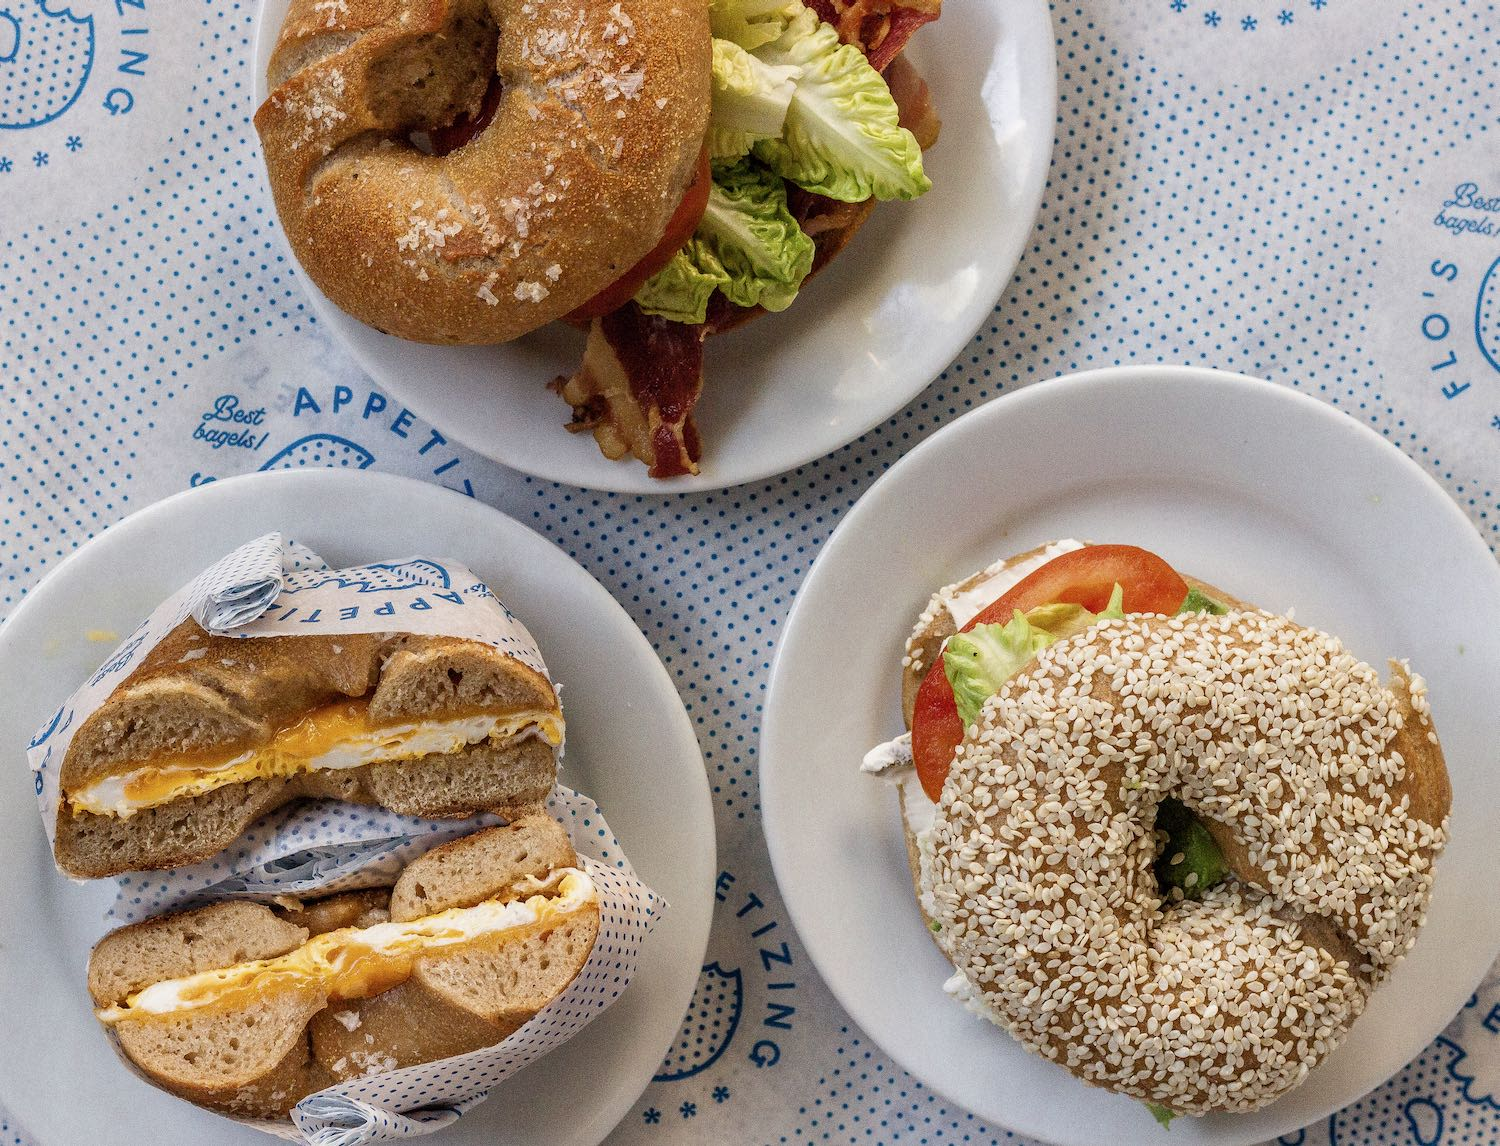 Amsterdam restaurant Flo's shows bagel sandwiches with egg, bacon, tomato, lettuce. Image for Table Sage